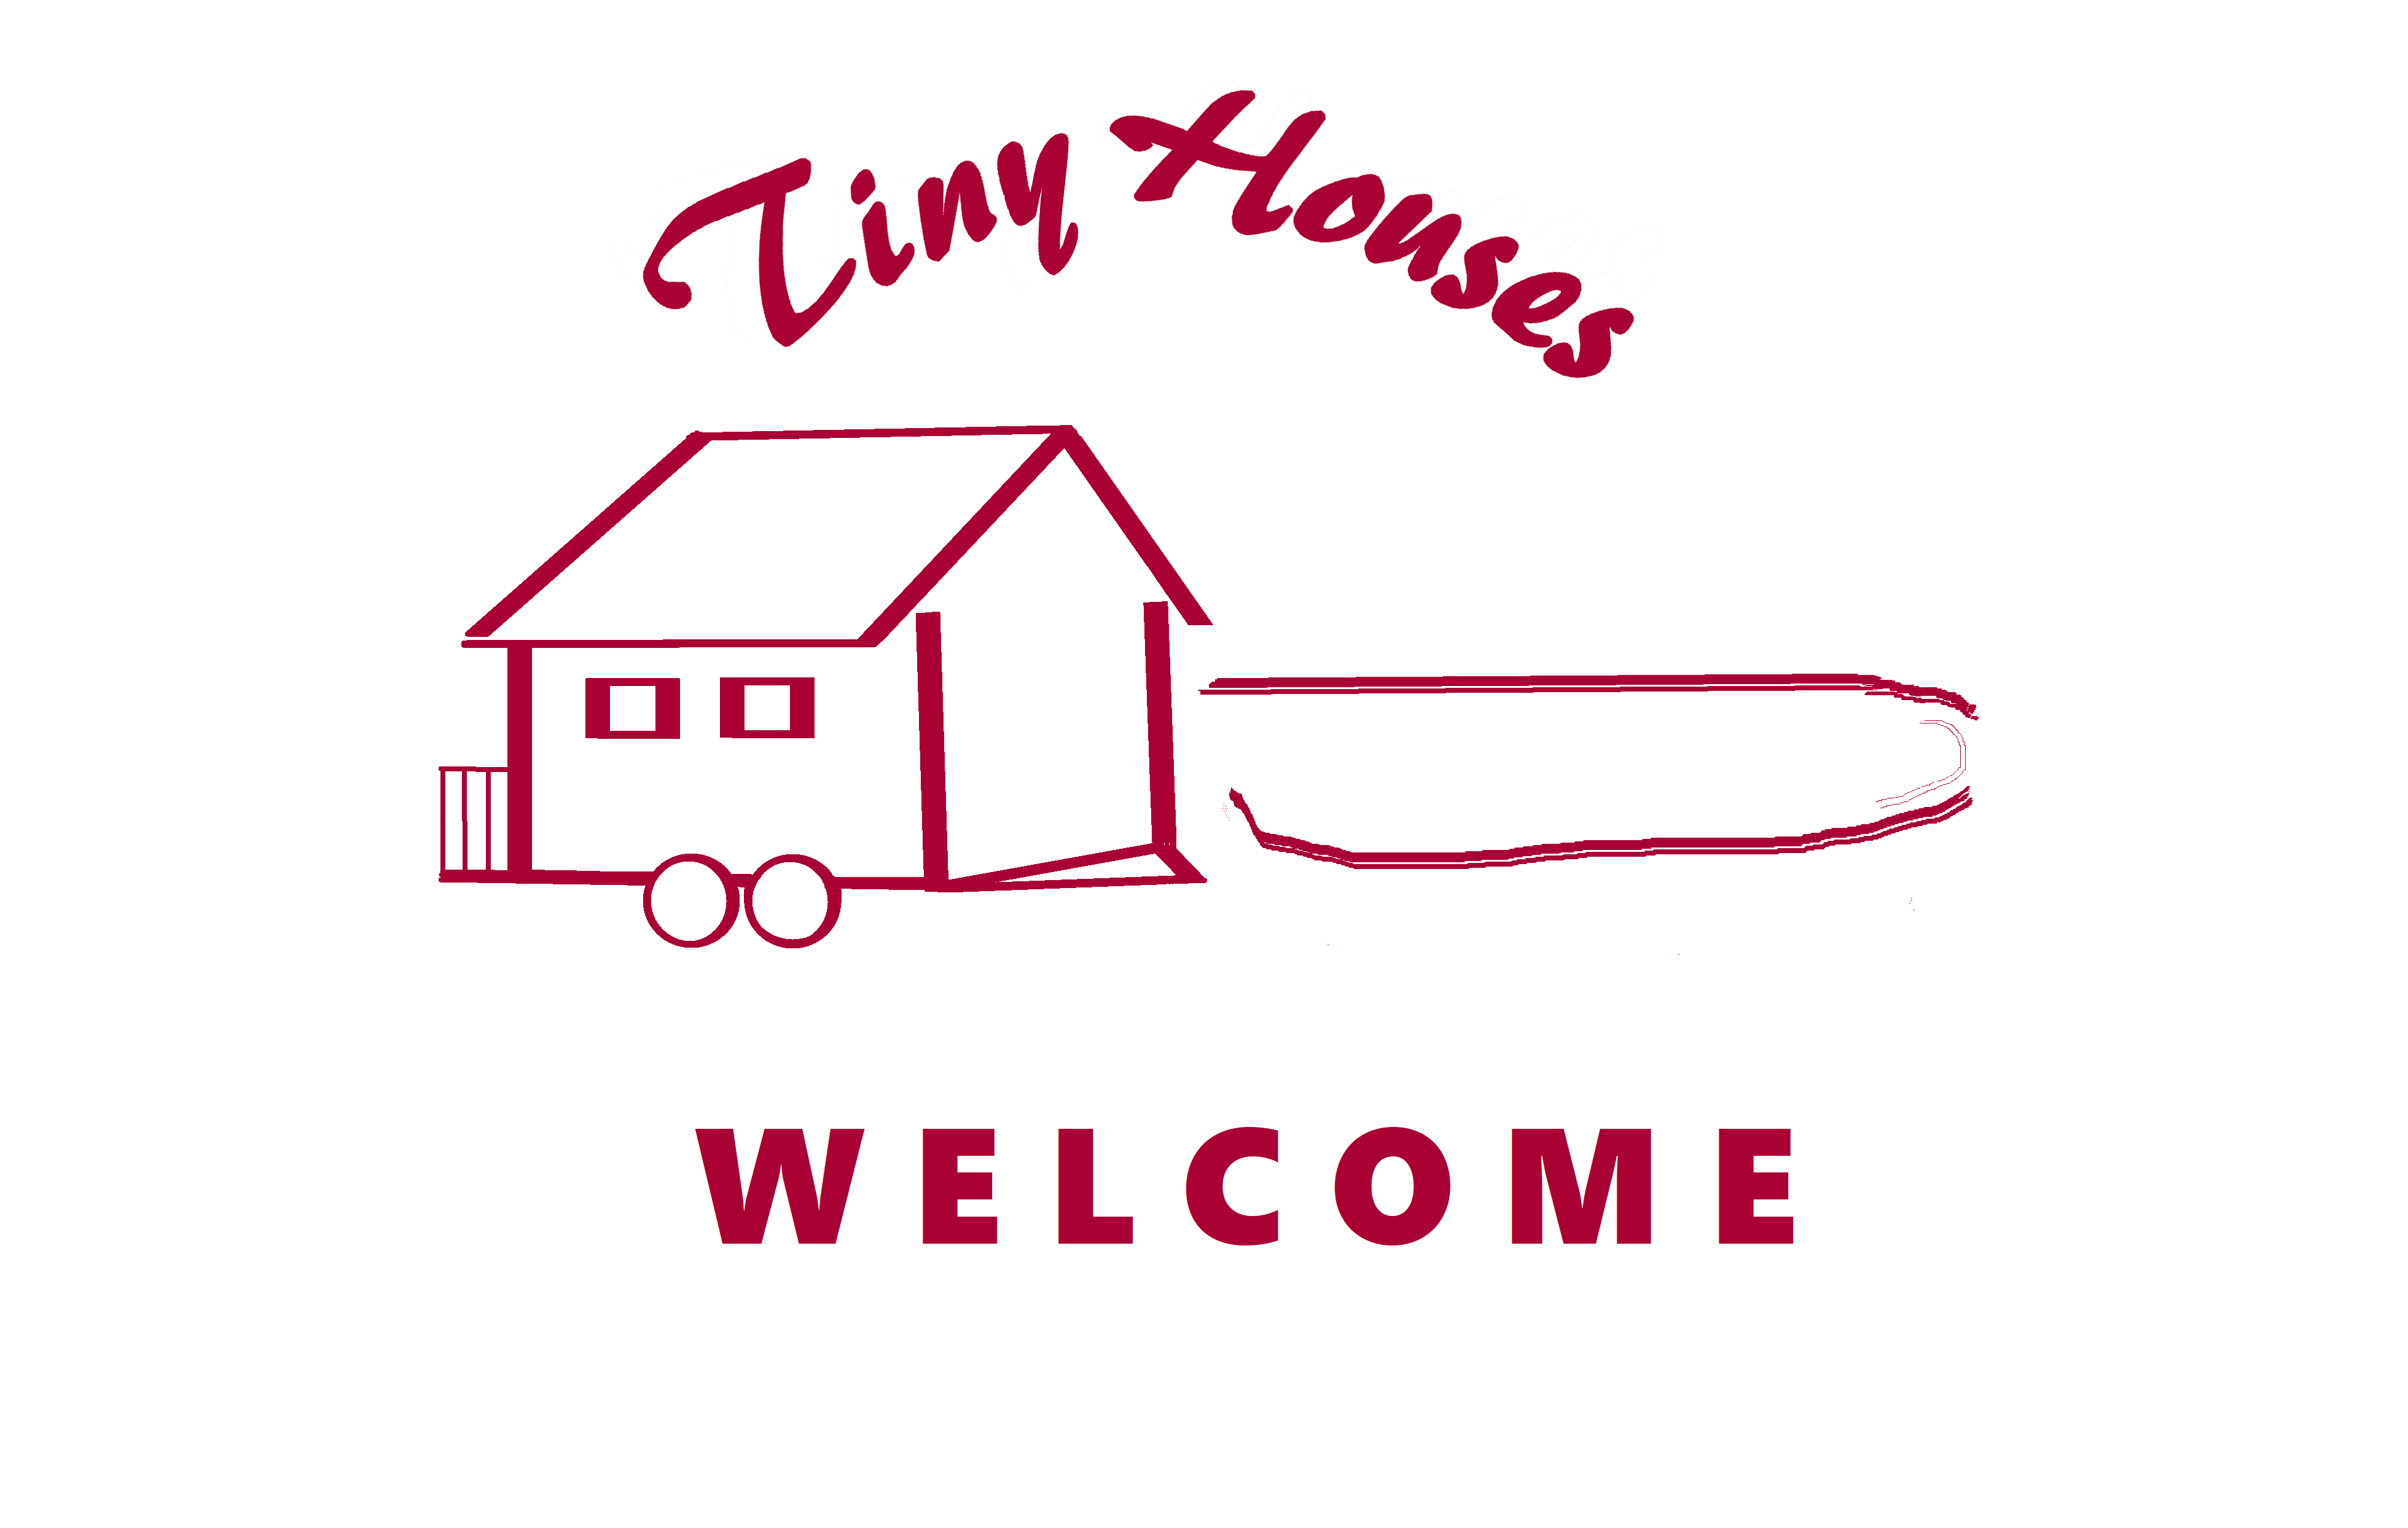 Where are Tiny Houses accepted as legal dwellings ... Our RV park and Mobile Home community allows tiny homes